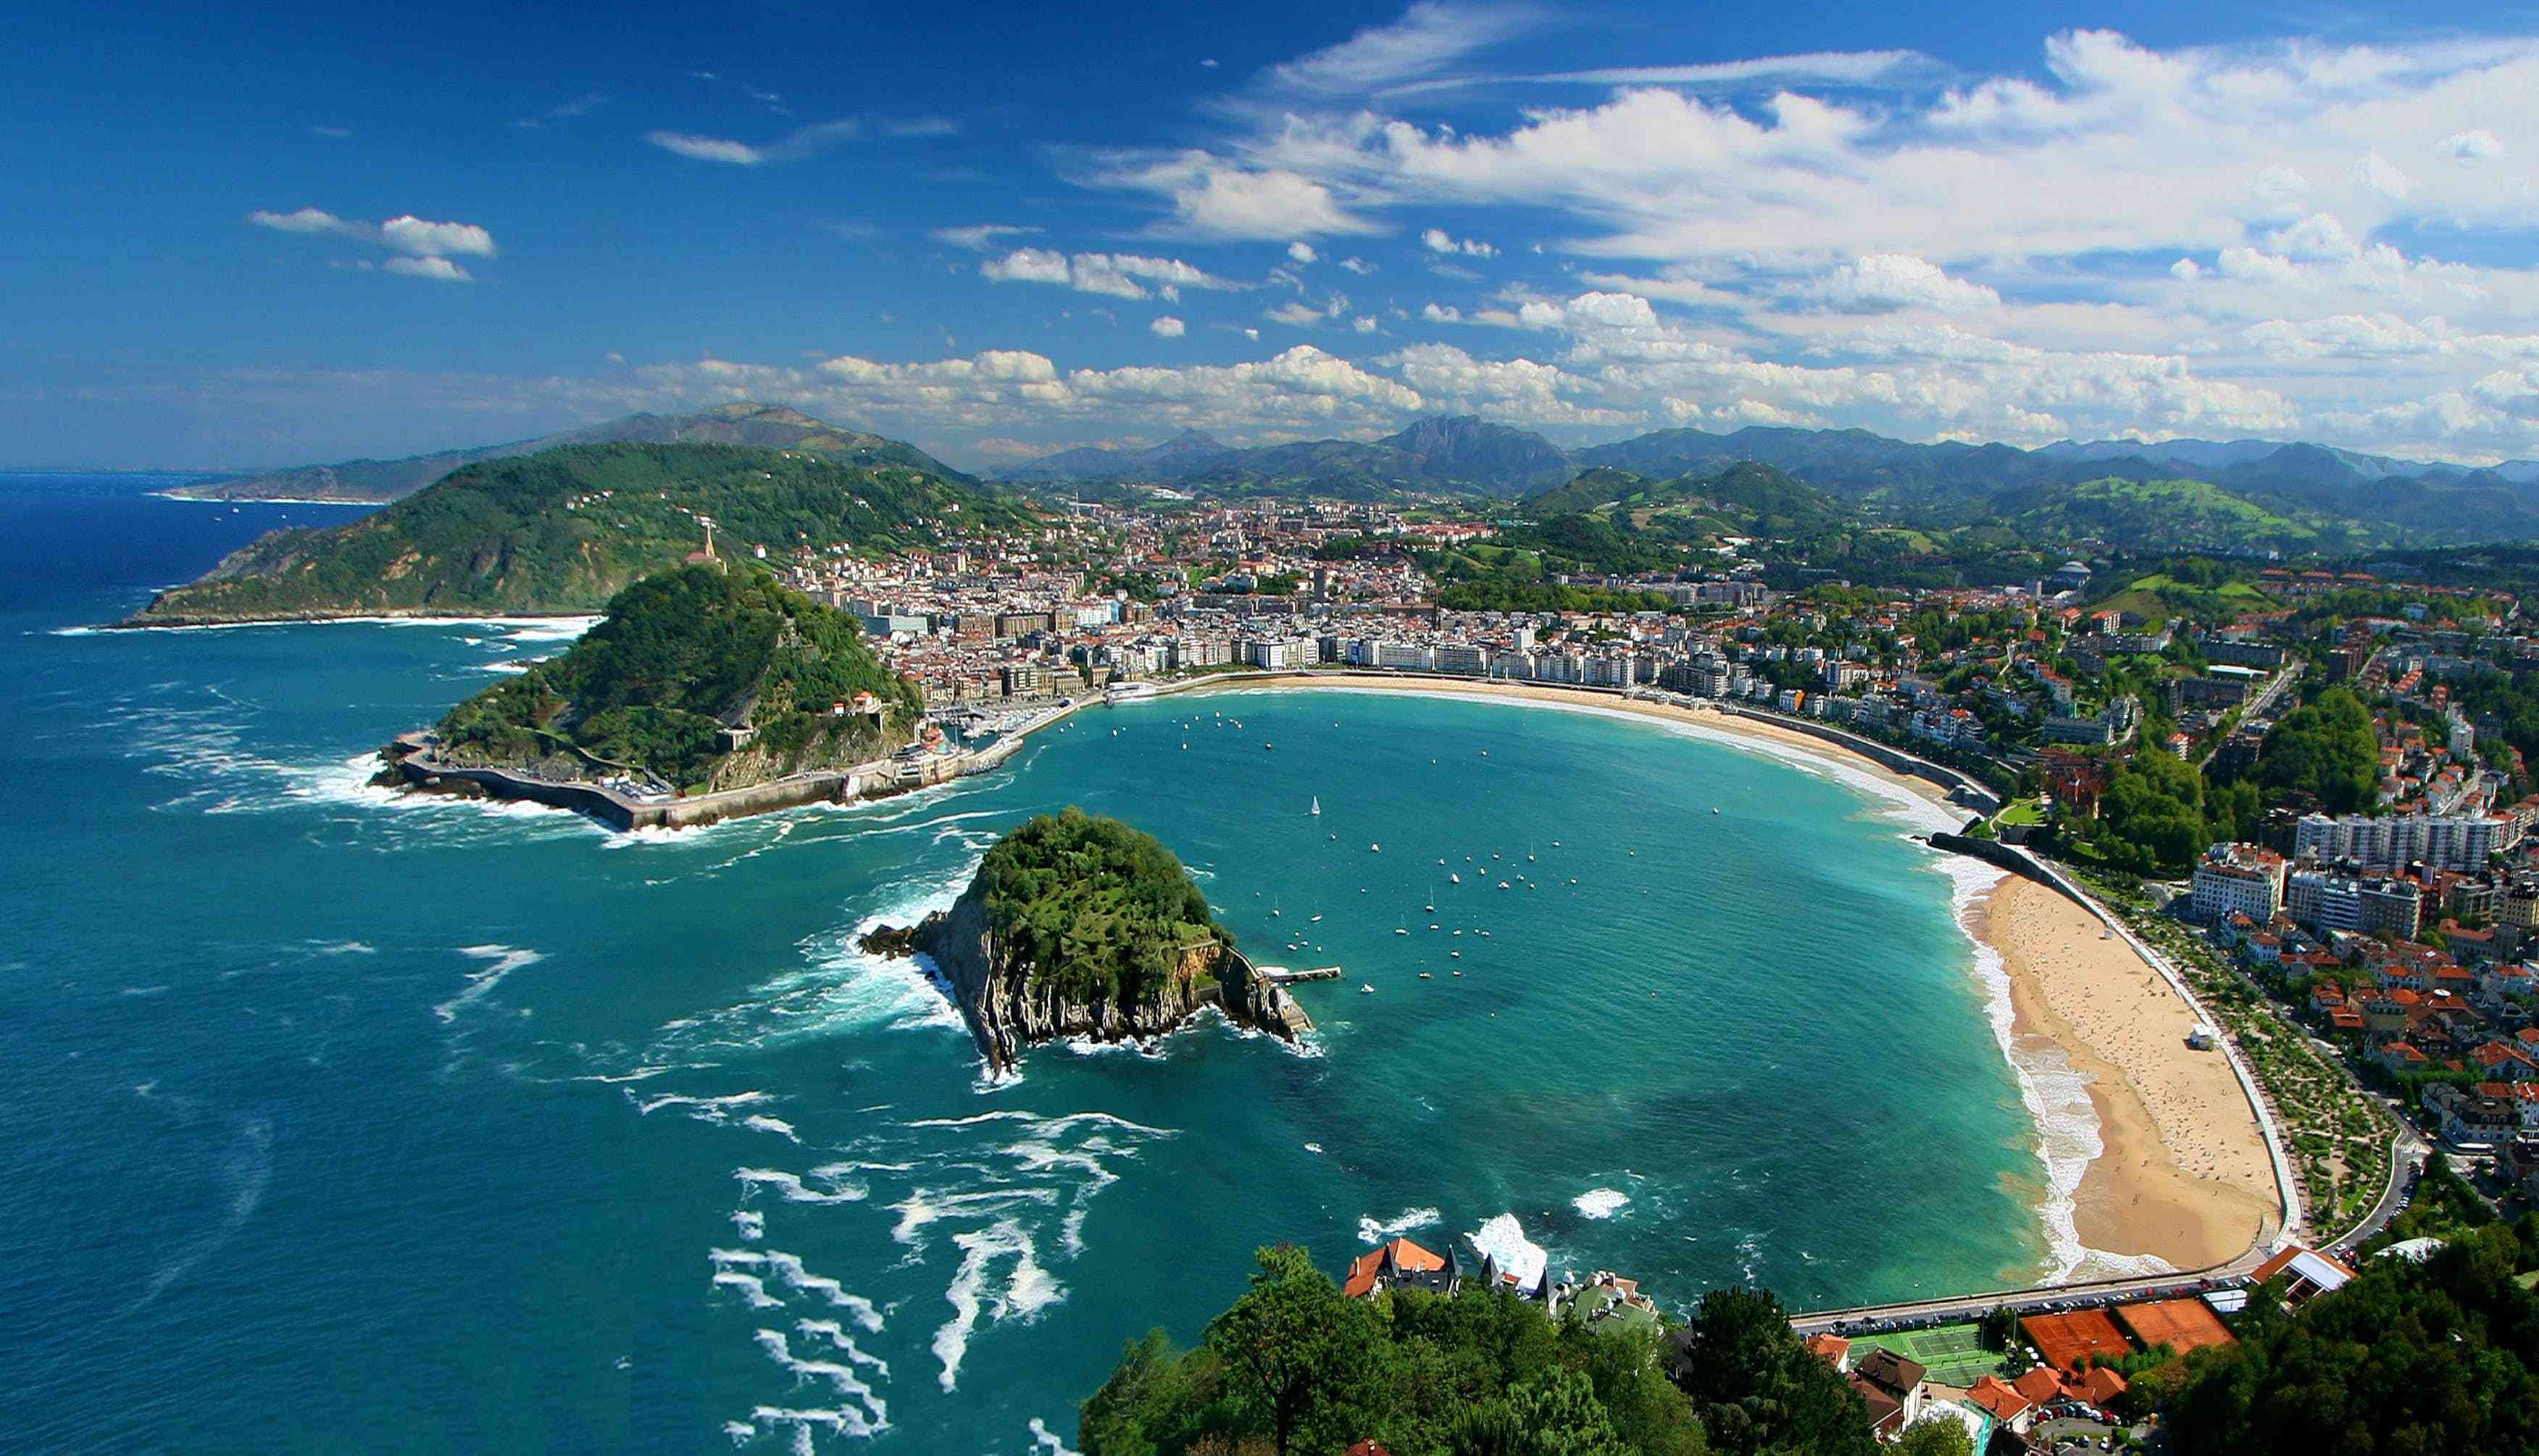 Aerial view of the beach and city of San Sebastian, Spain